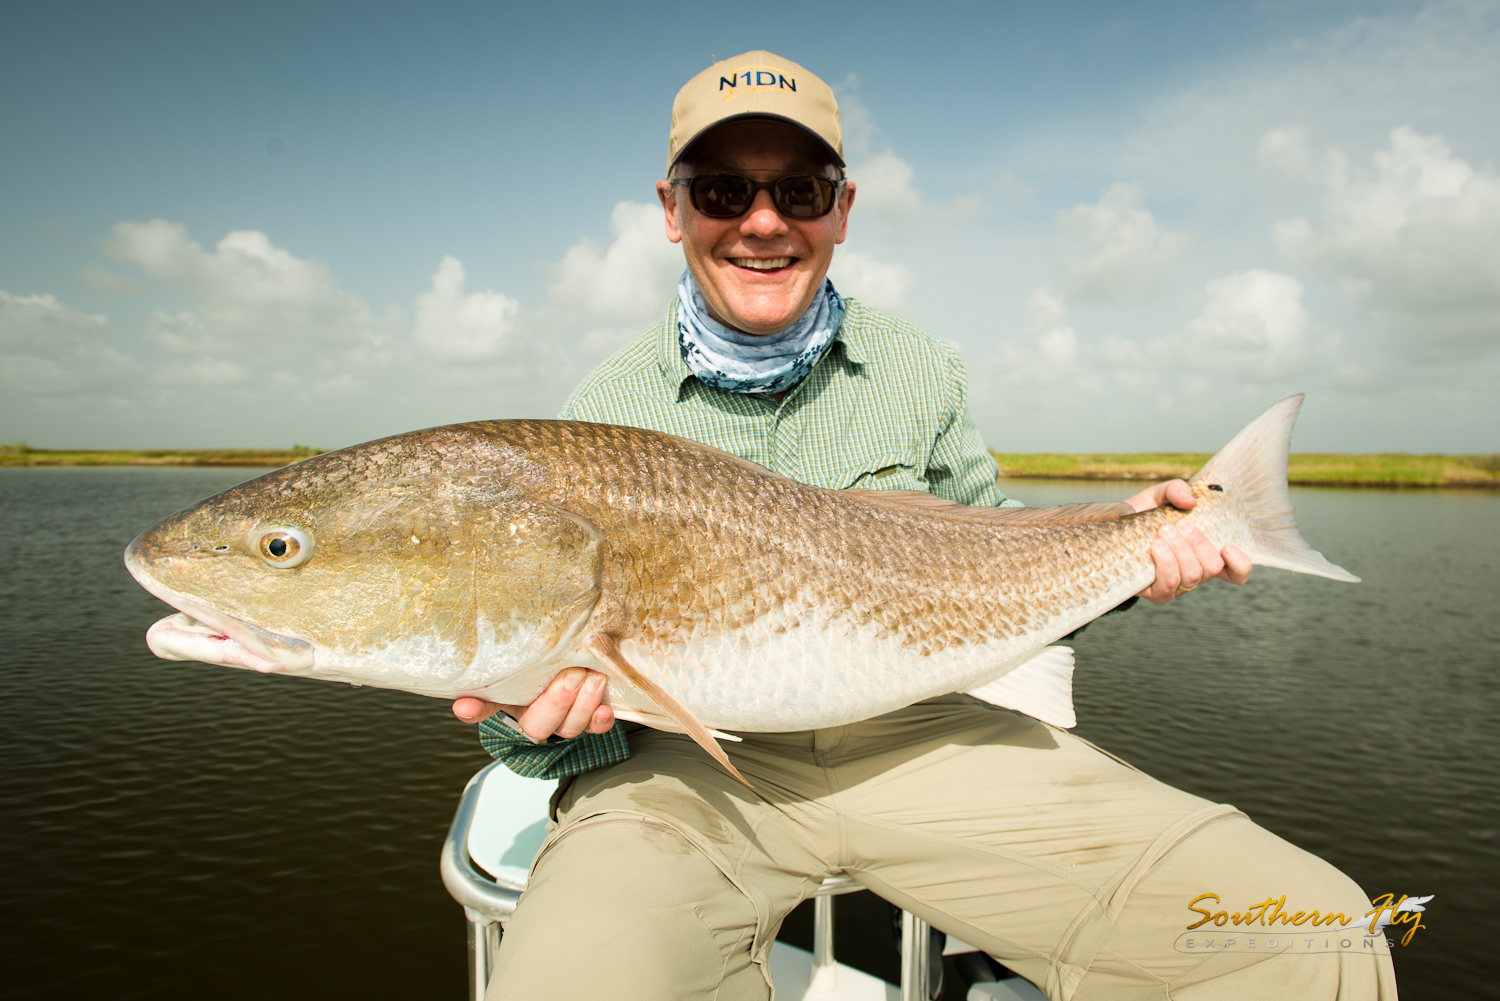 Fishing trips new orleans louisiana with southern fly expeditions